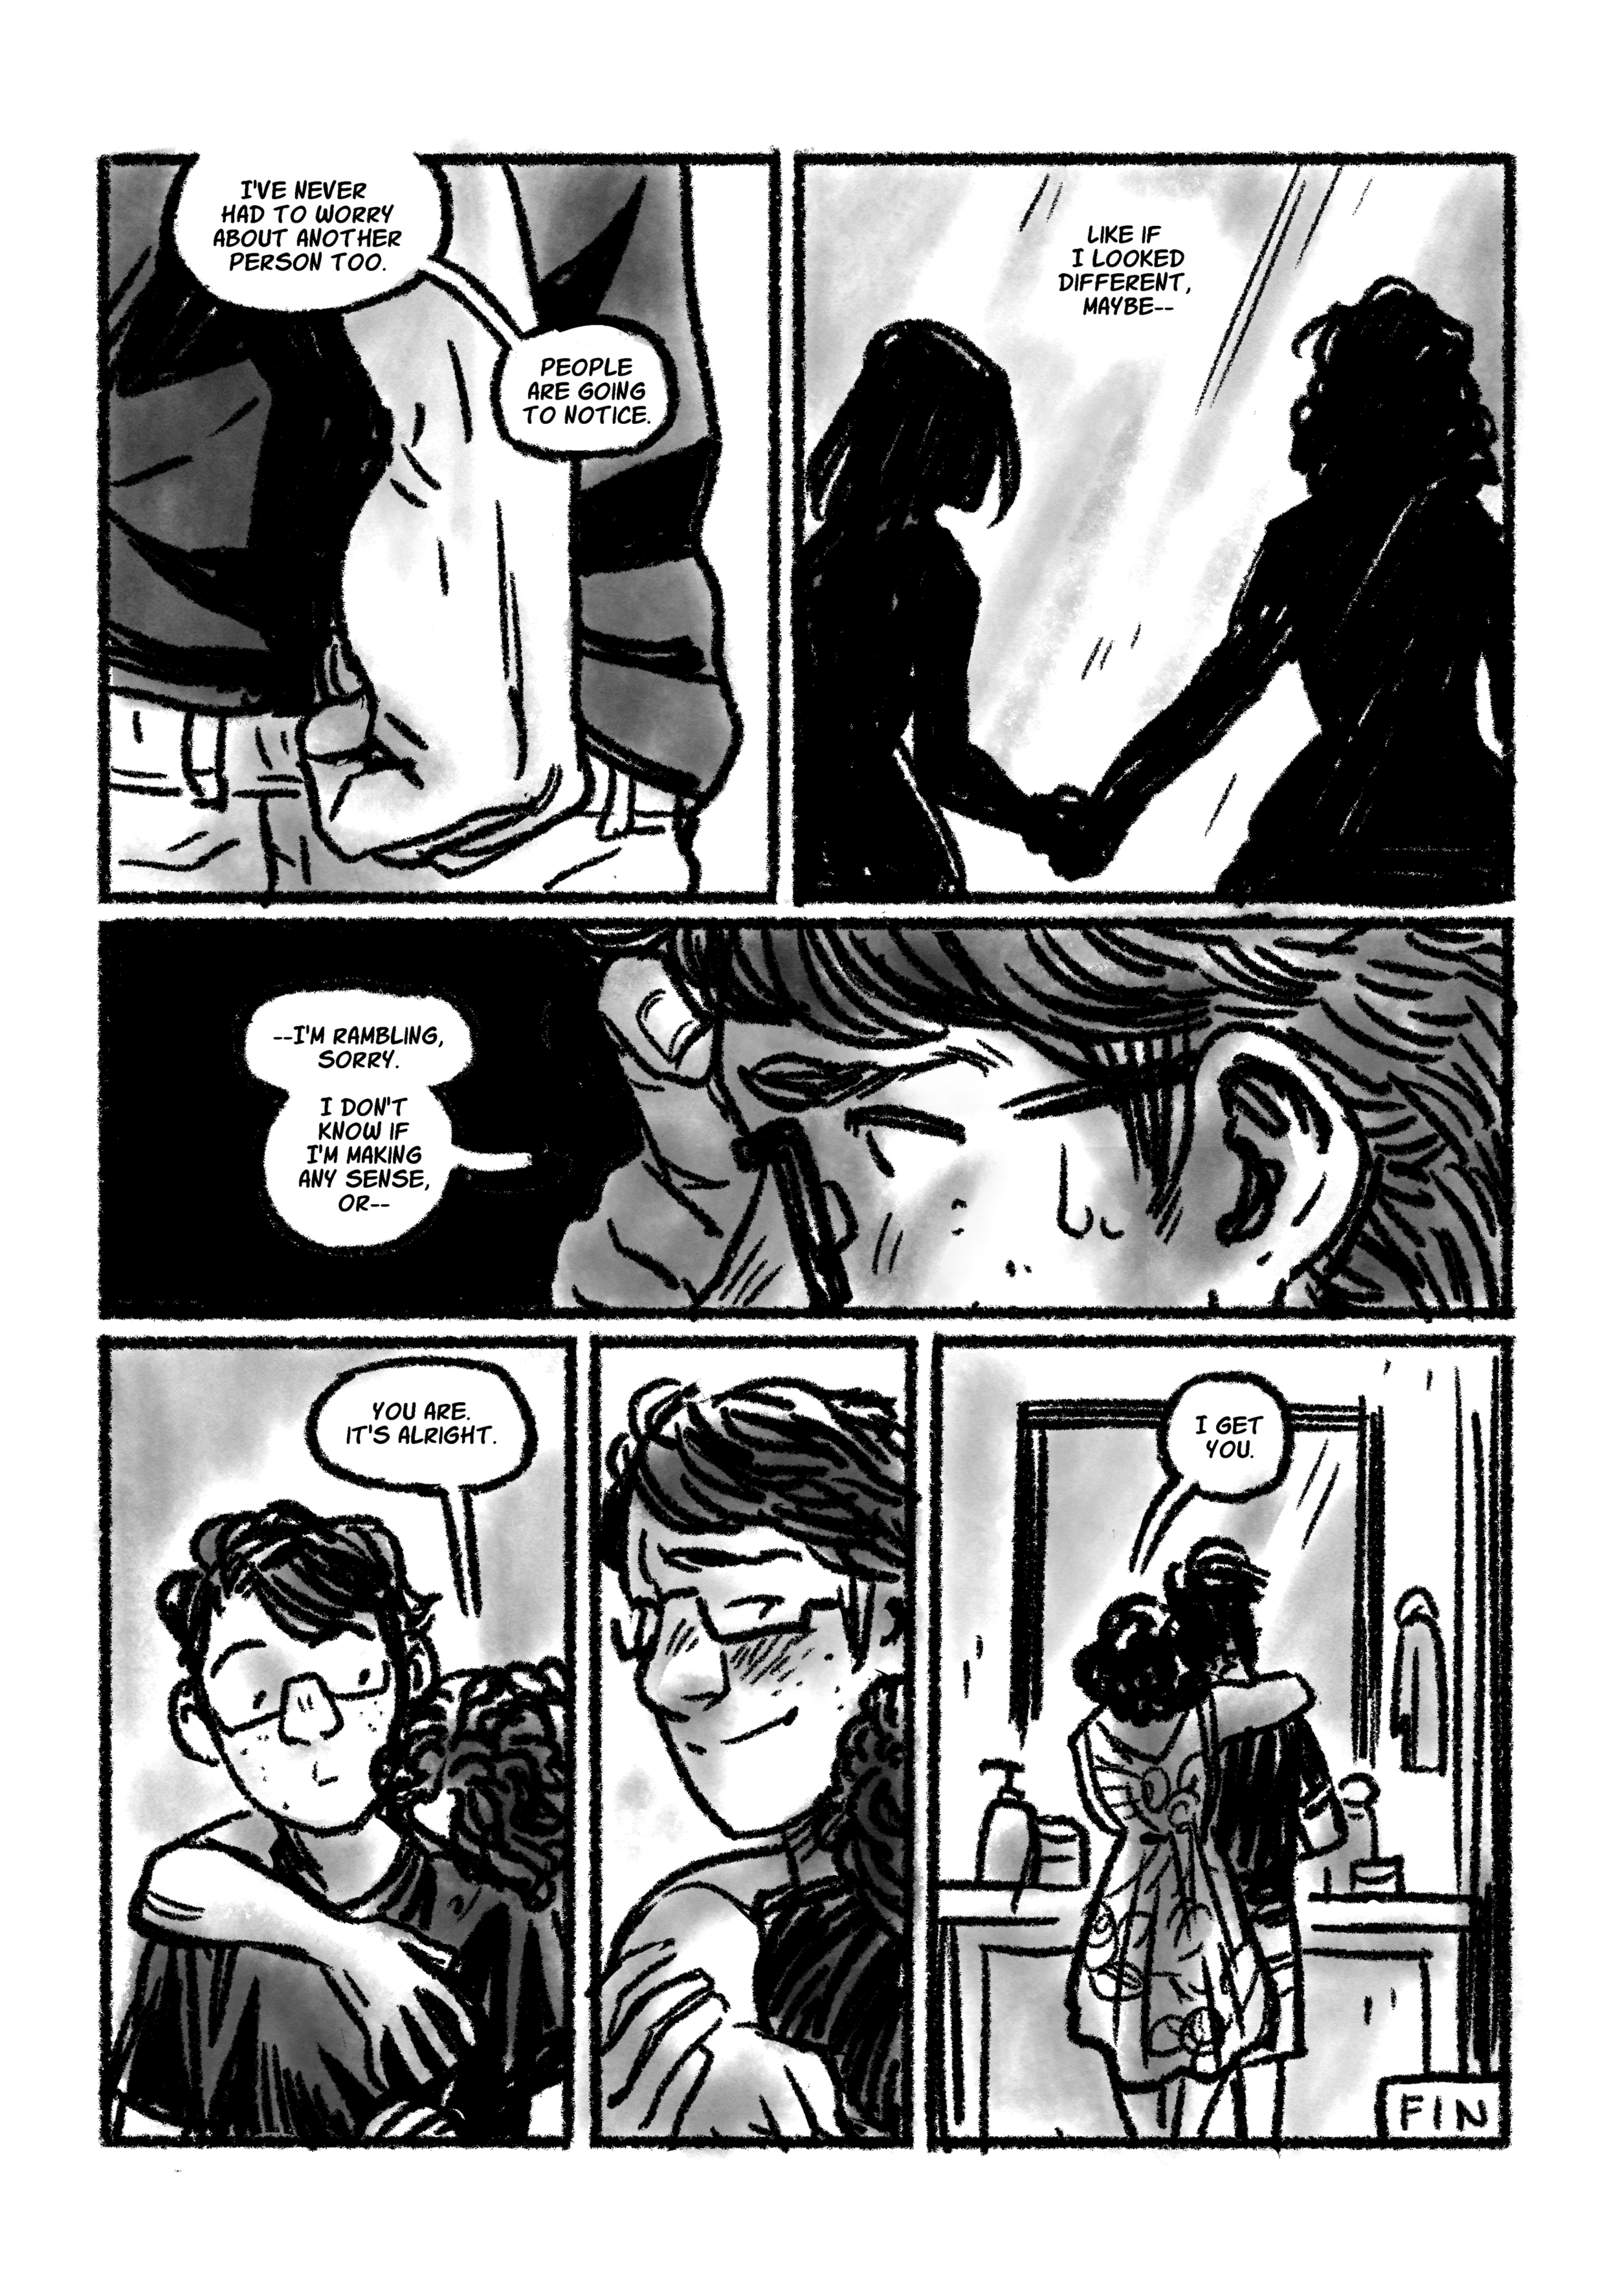 butch pg3.png